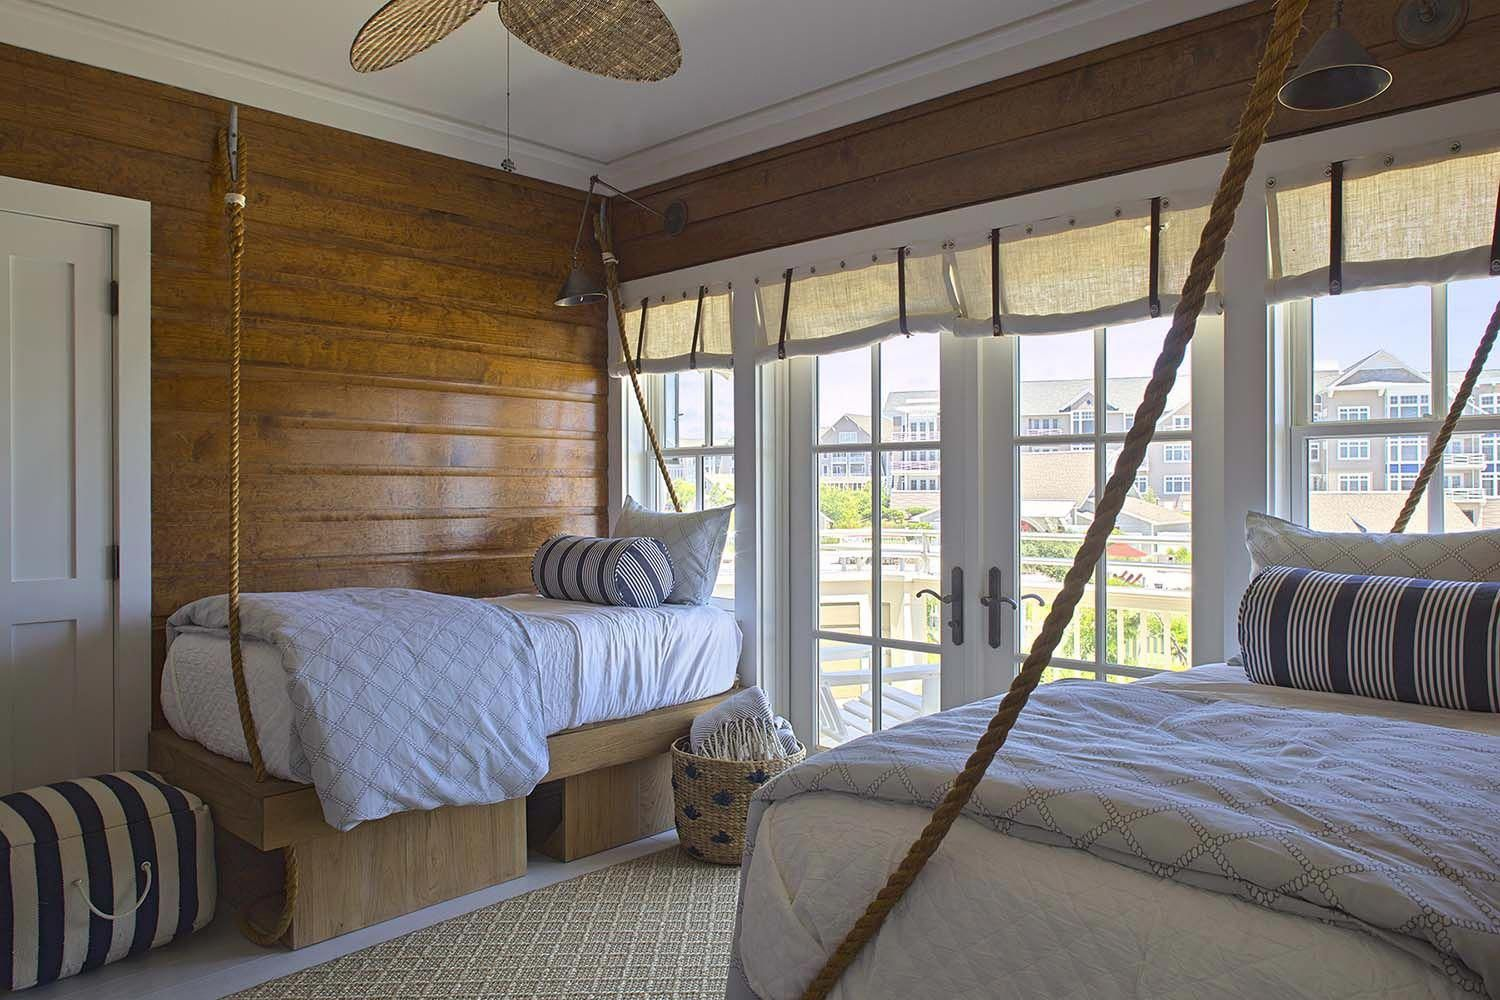 Bed and window placement  breezy seaside home makeover nestled on floridaus emerald coast